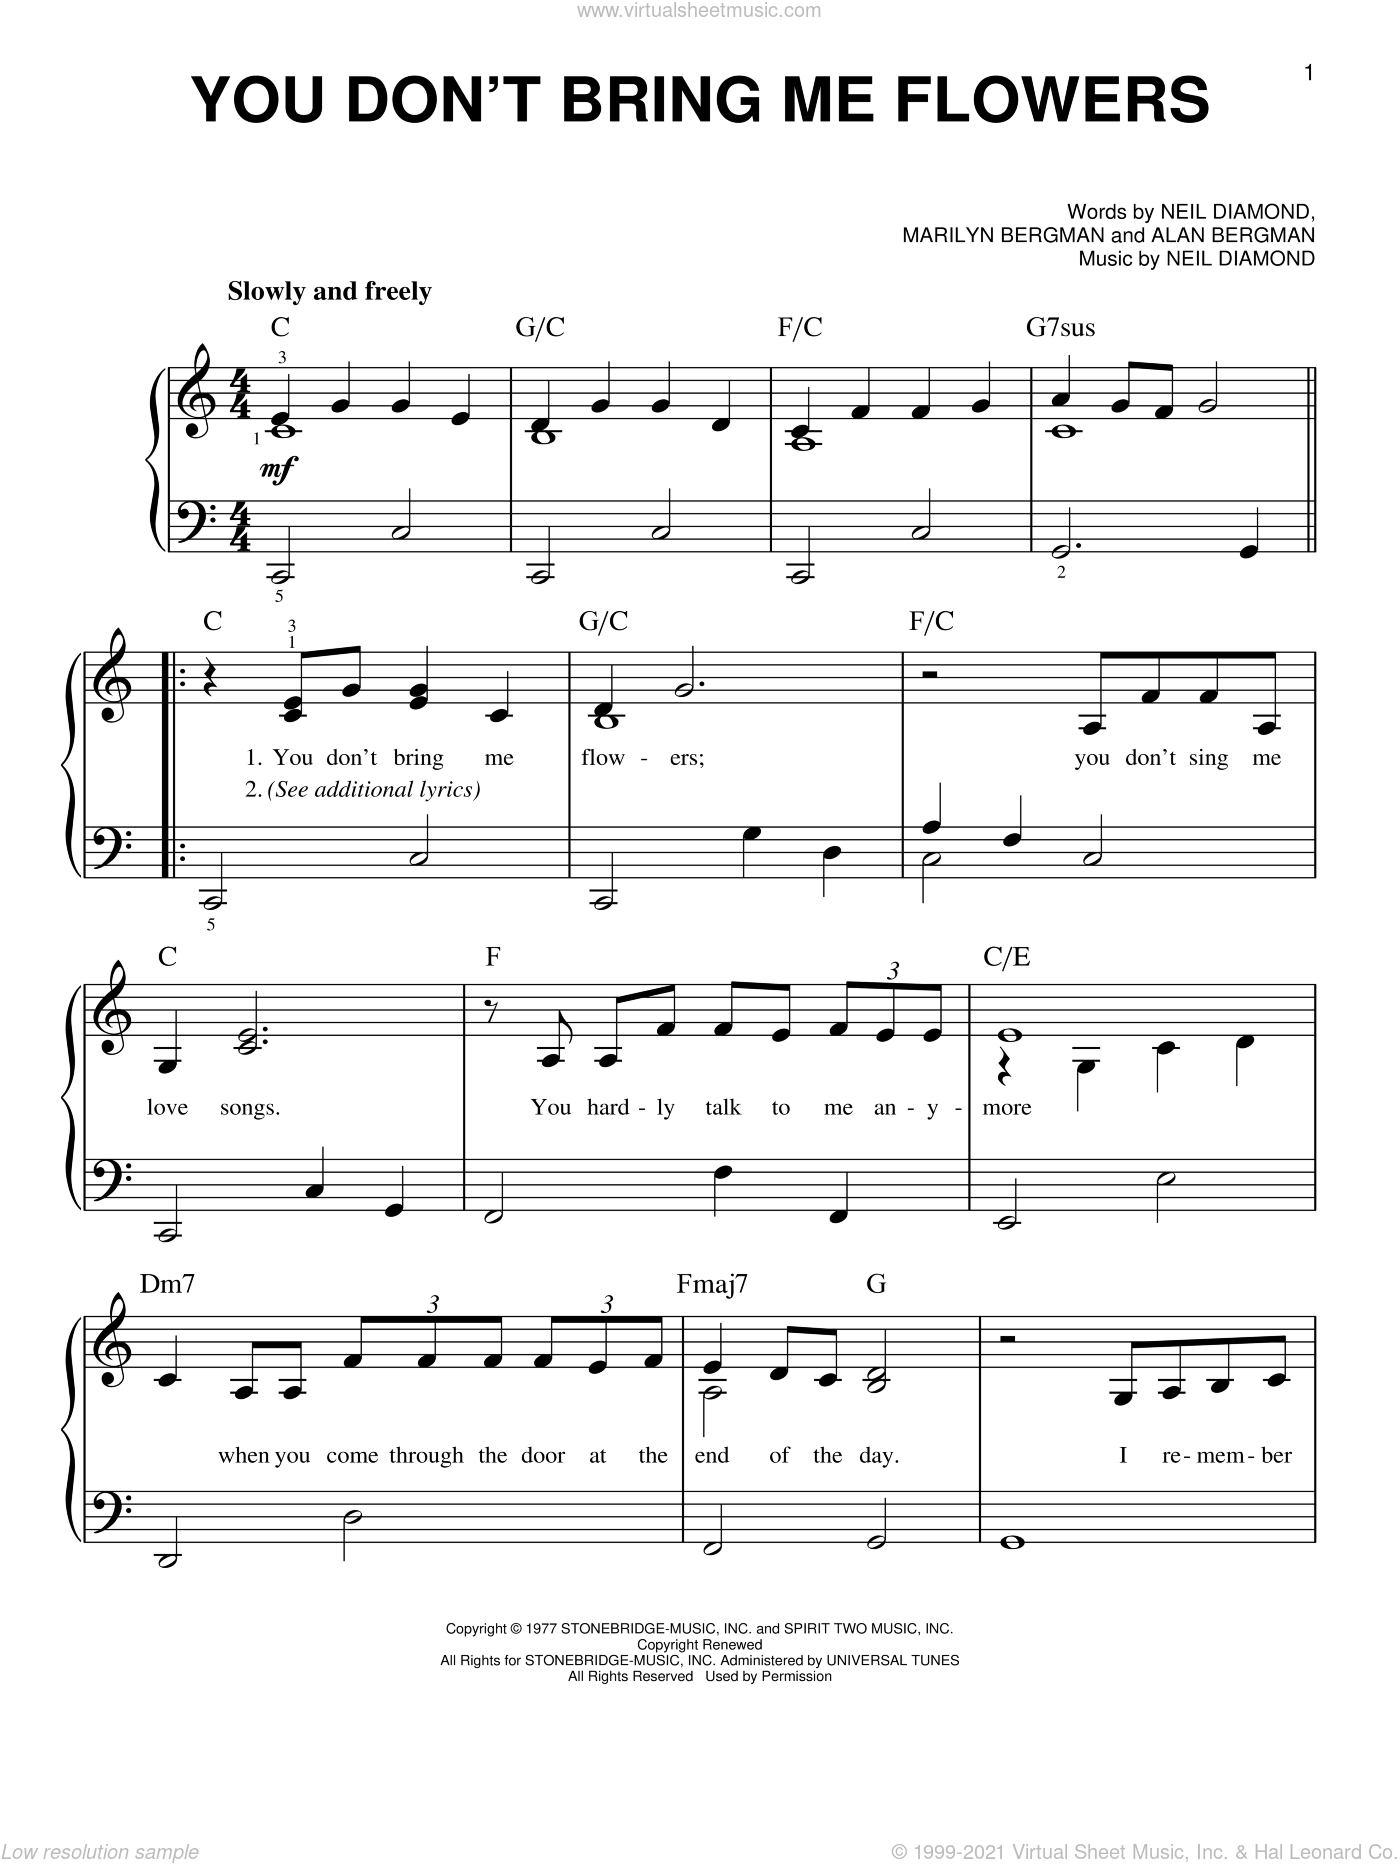 You Don't Bring Me Flowers sheet music for piano solo by Neil Diamond & Barbra Streisand, Barbra Streisand, Alan Bergman, Marilyn Bergman and Neil Diamond, easy skill level